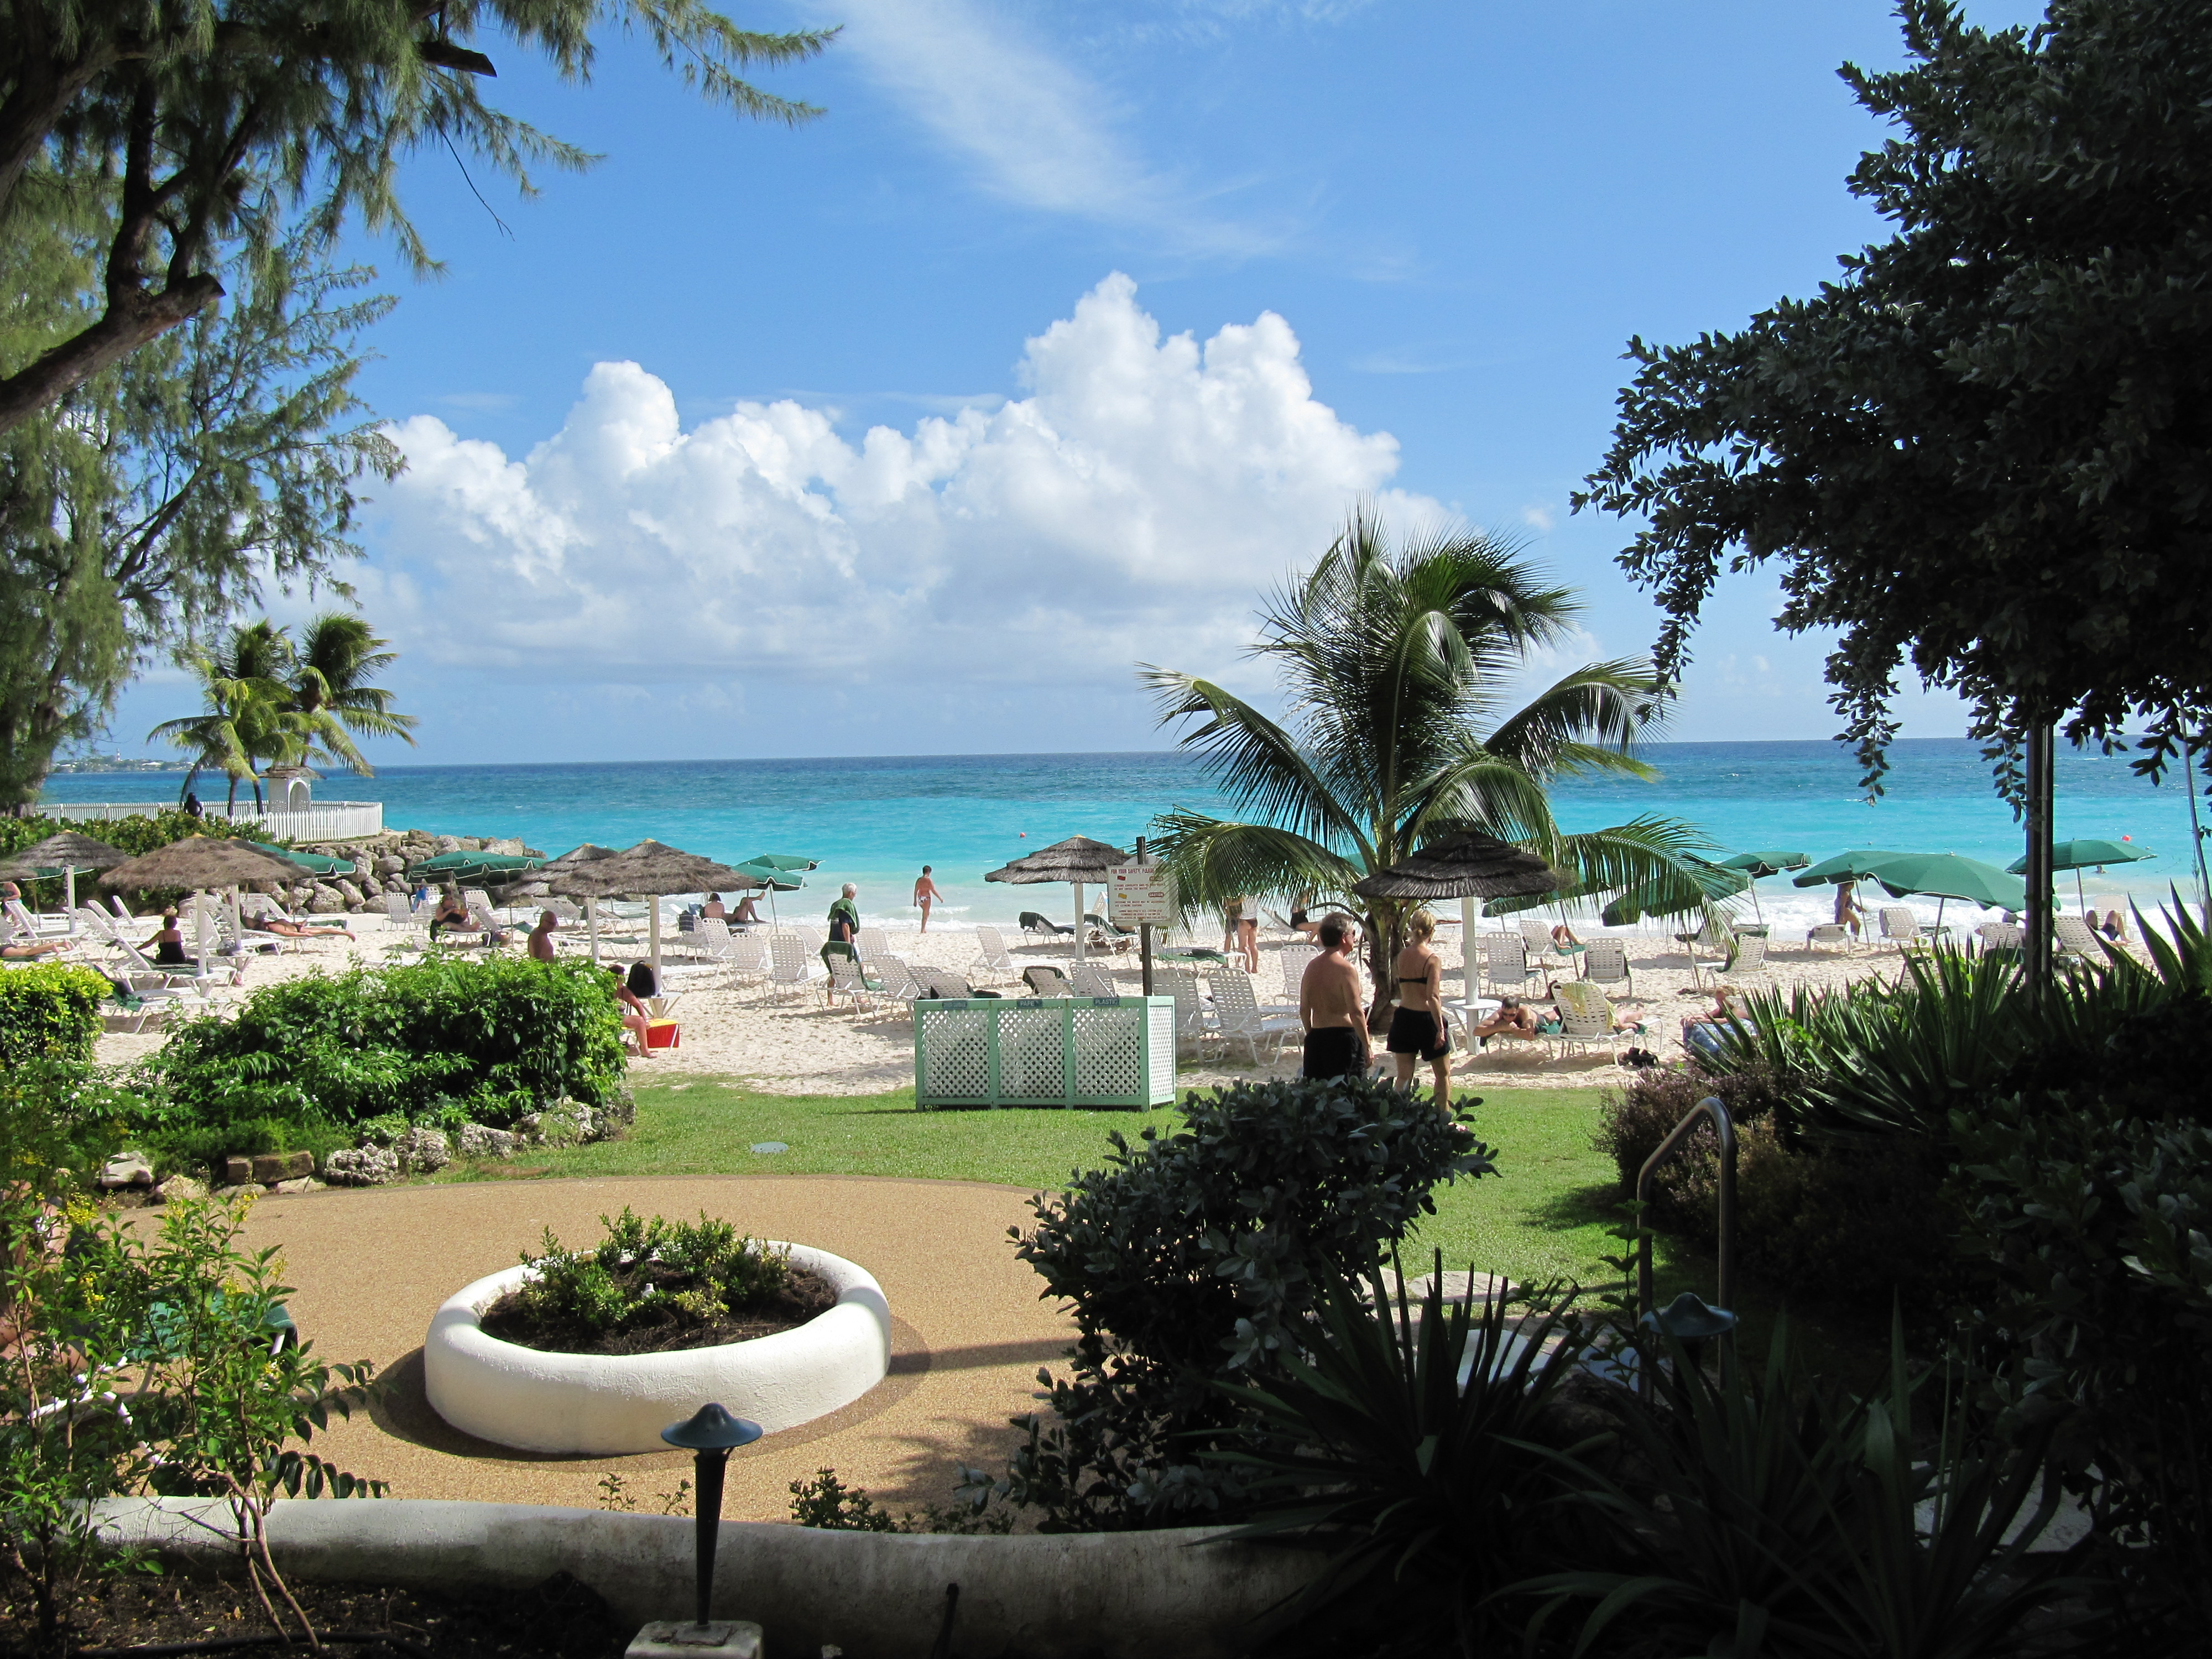 Hotellbadstrand på Barbados